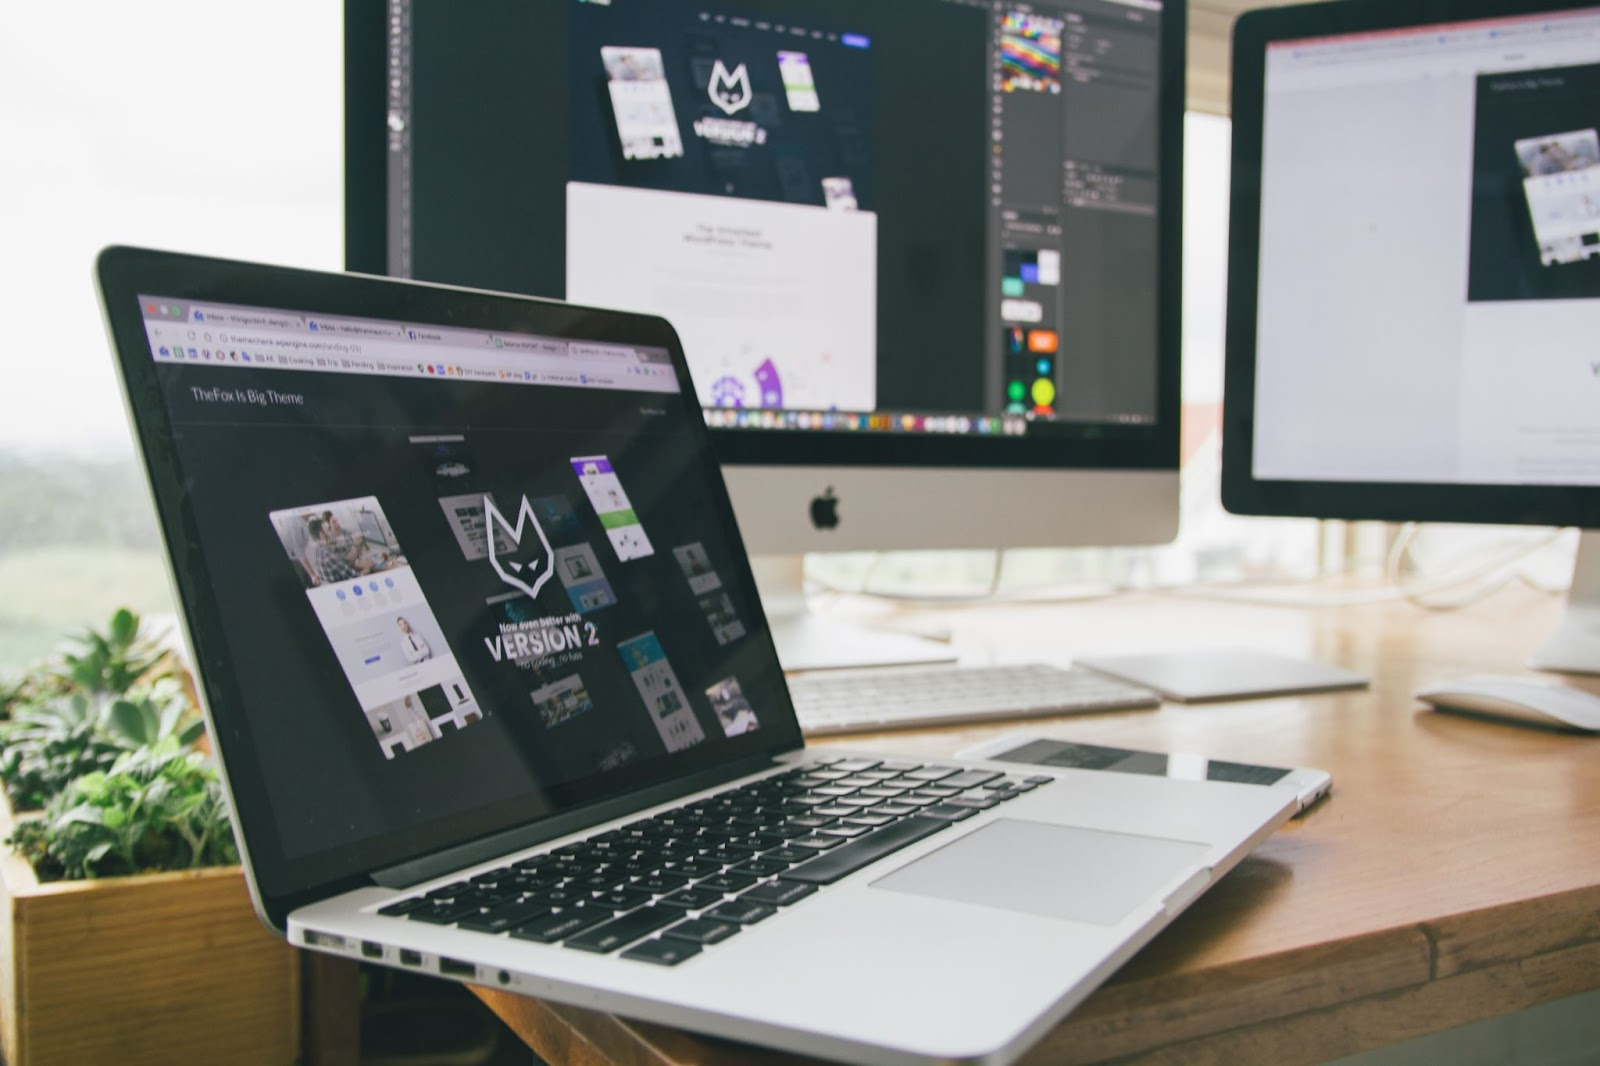 9 Graphic Design Tips for MacBook Users